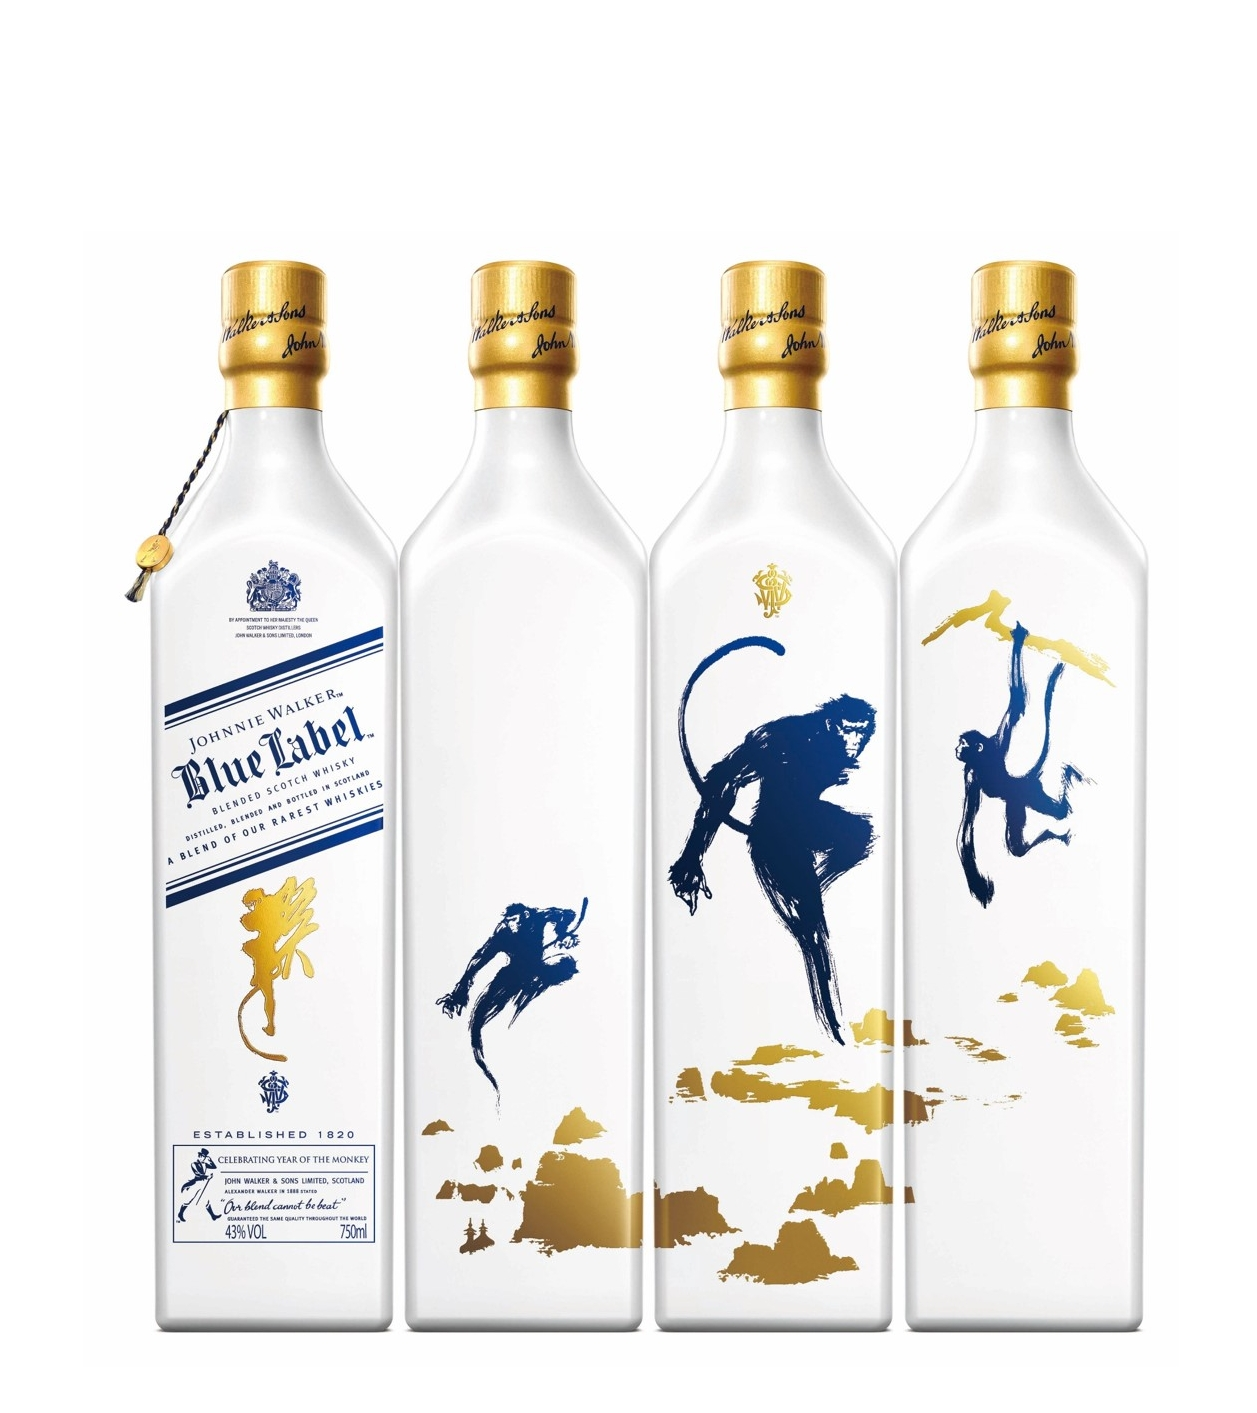 Johnnie Walker Blue Label Celebrates The Year Of The